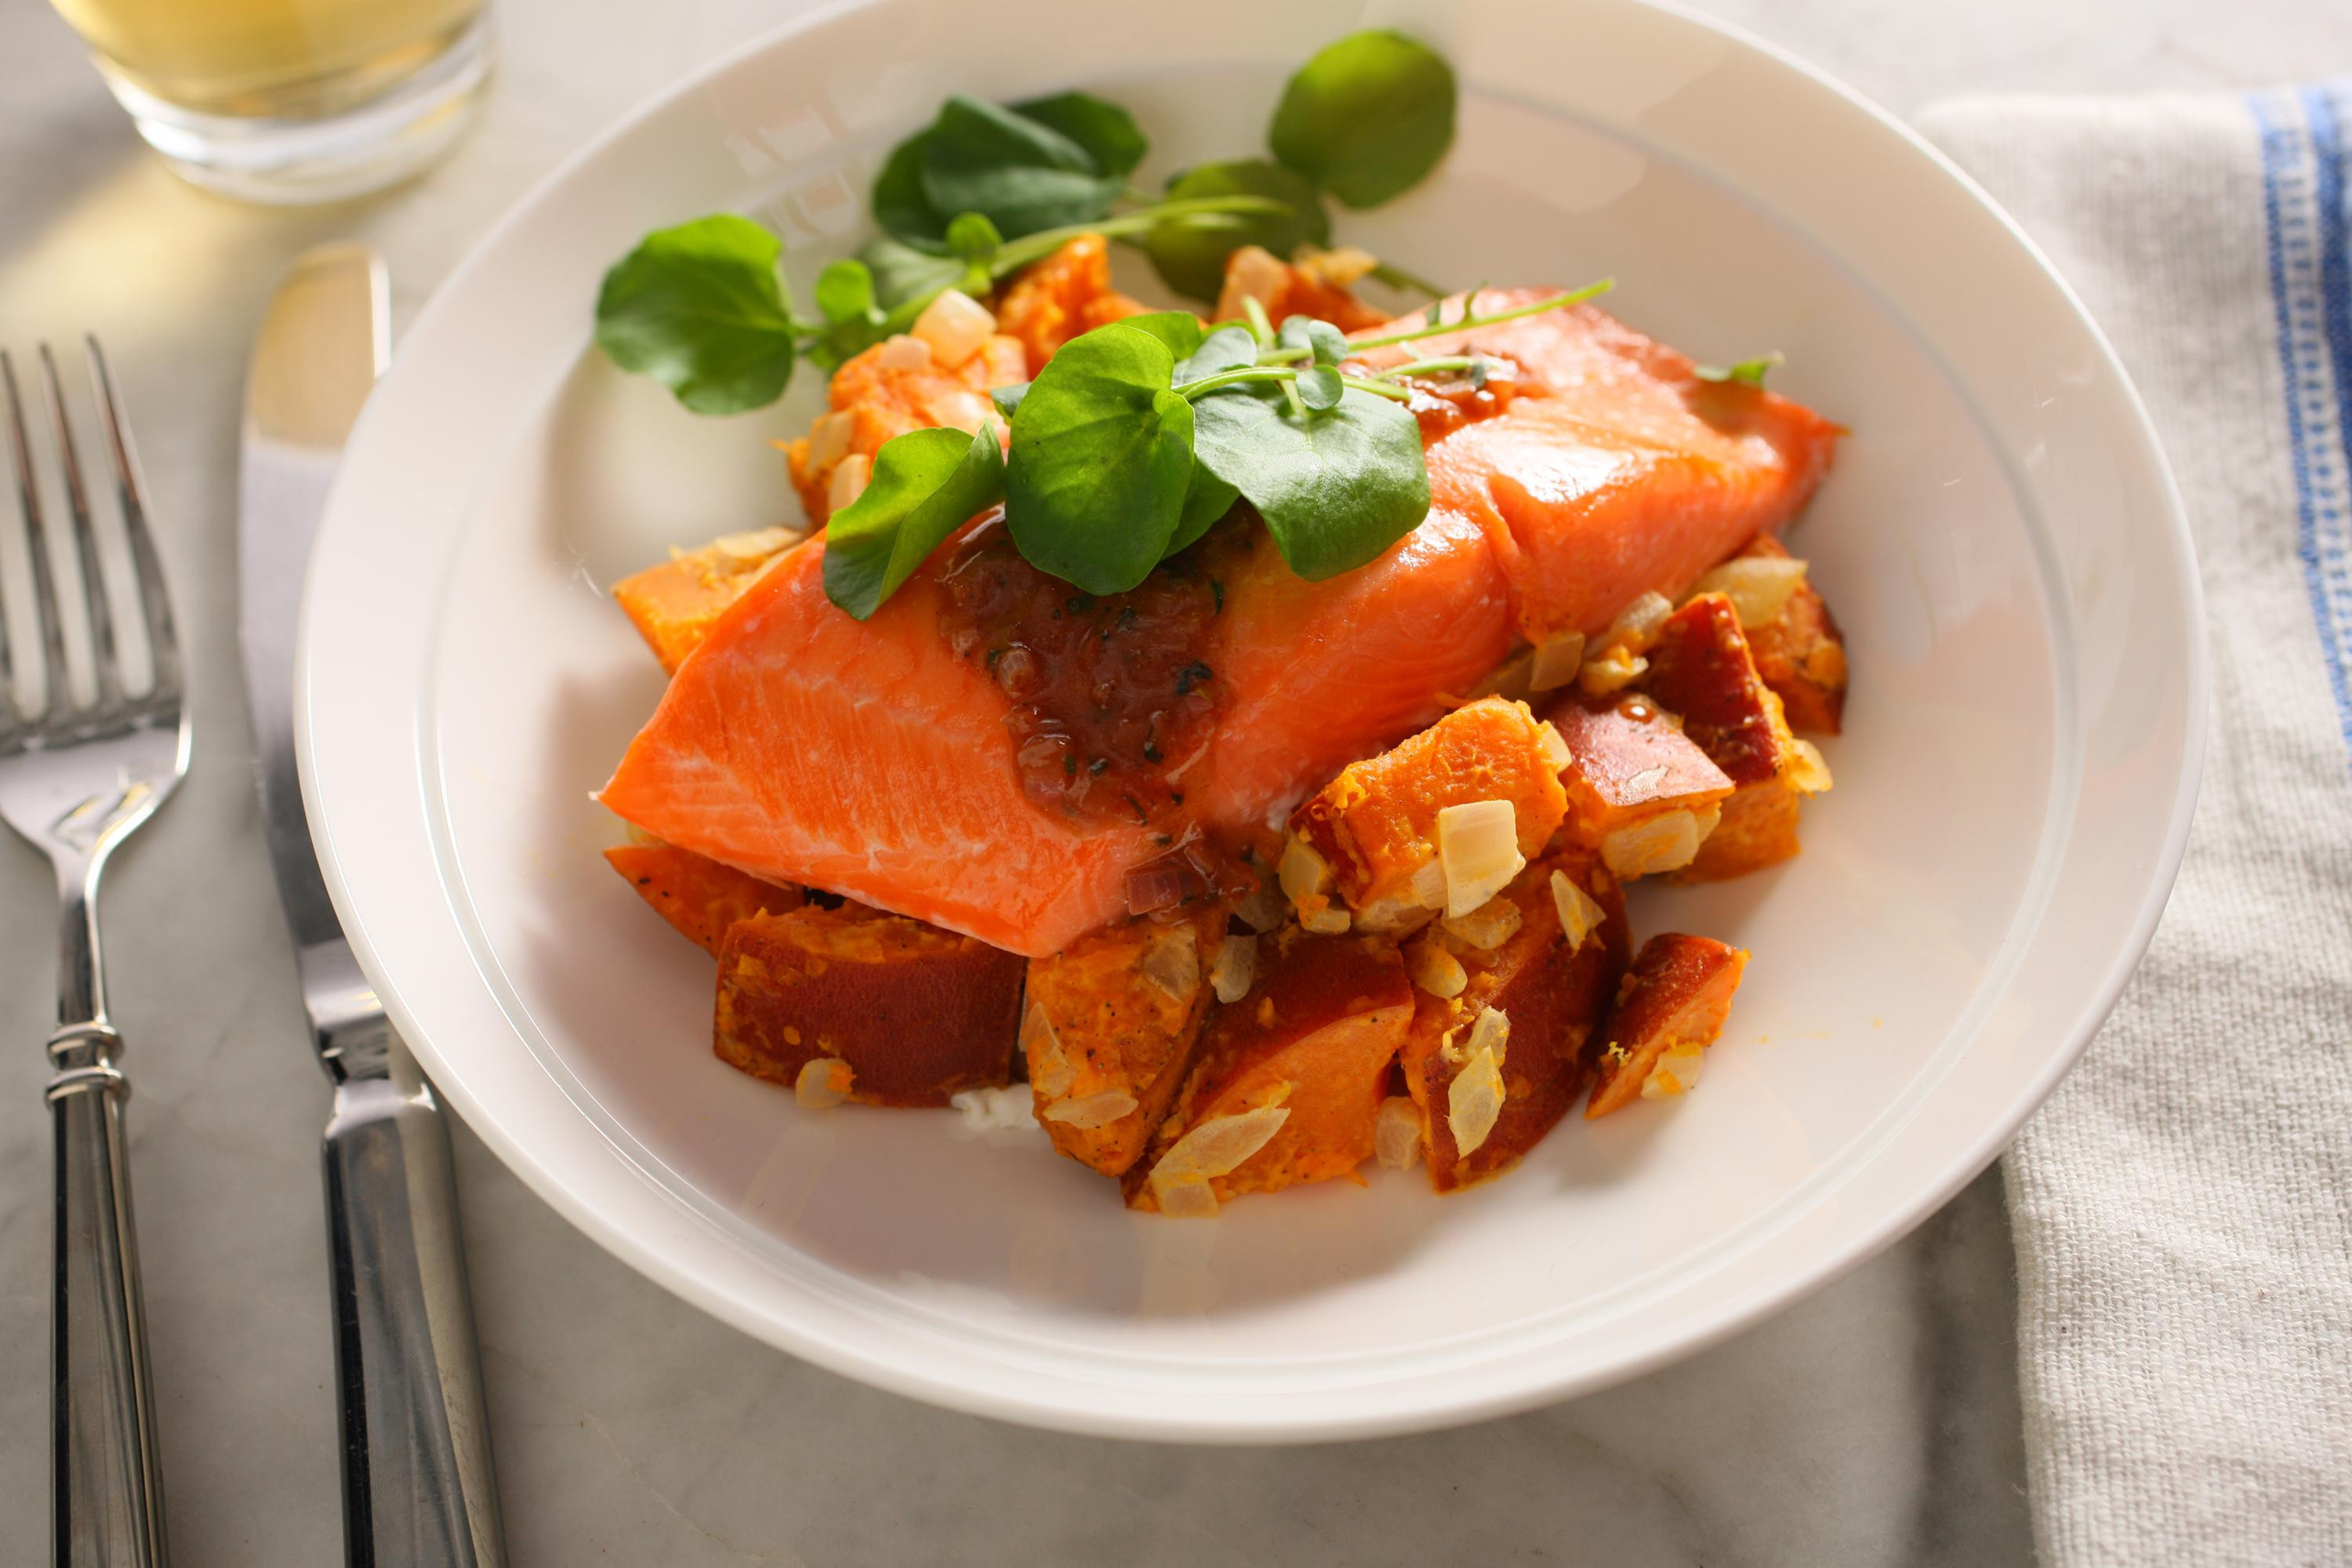 Salmon And Sweet Potato  Coho Salmon with Sweet Potato Salad and Cinnamon Sauce